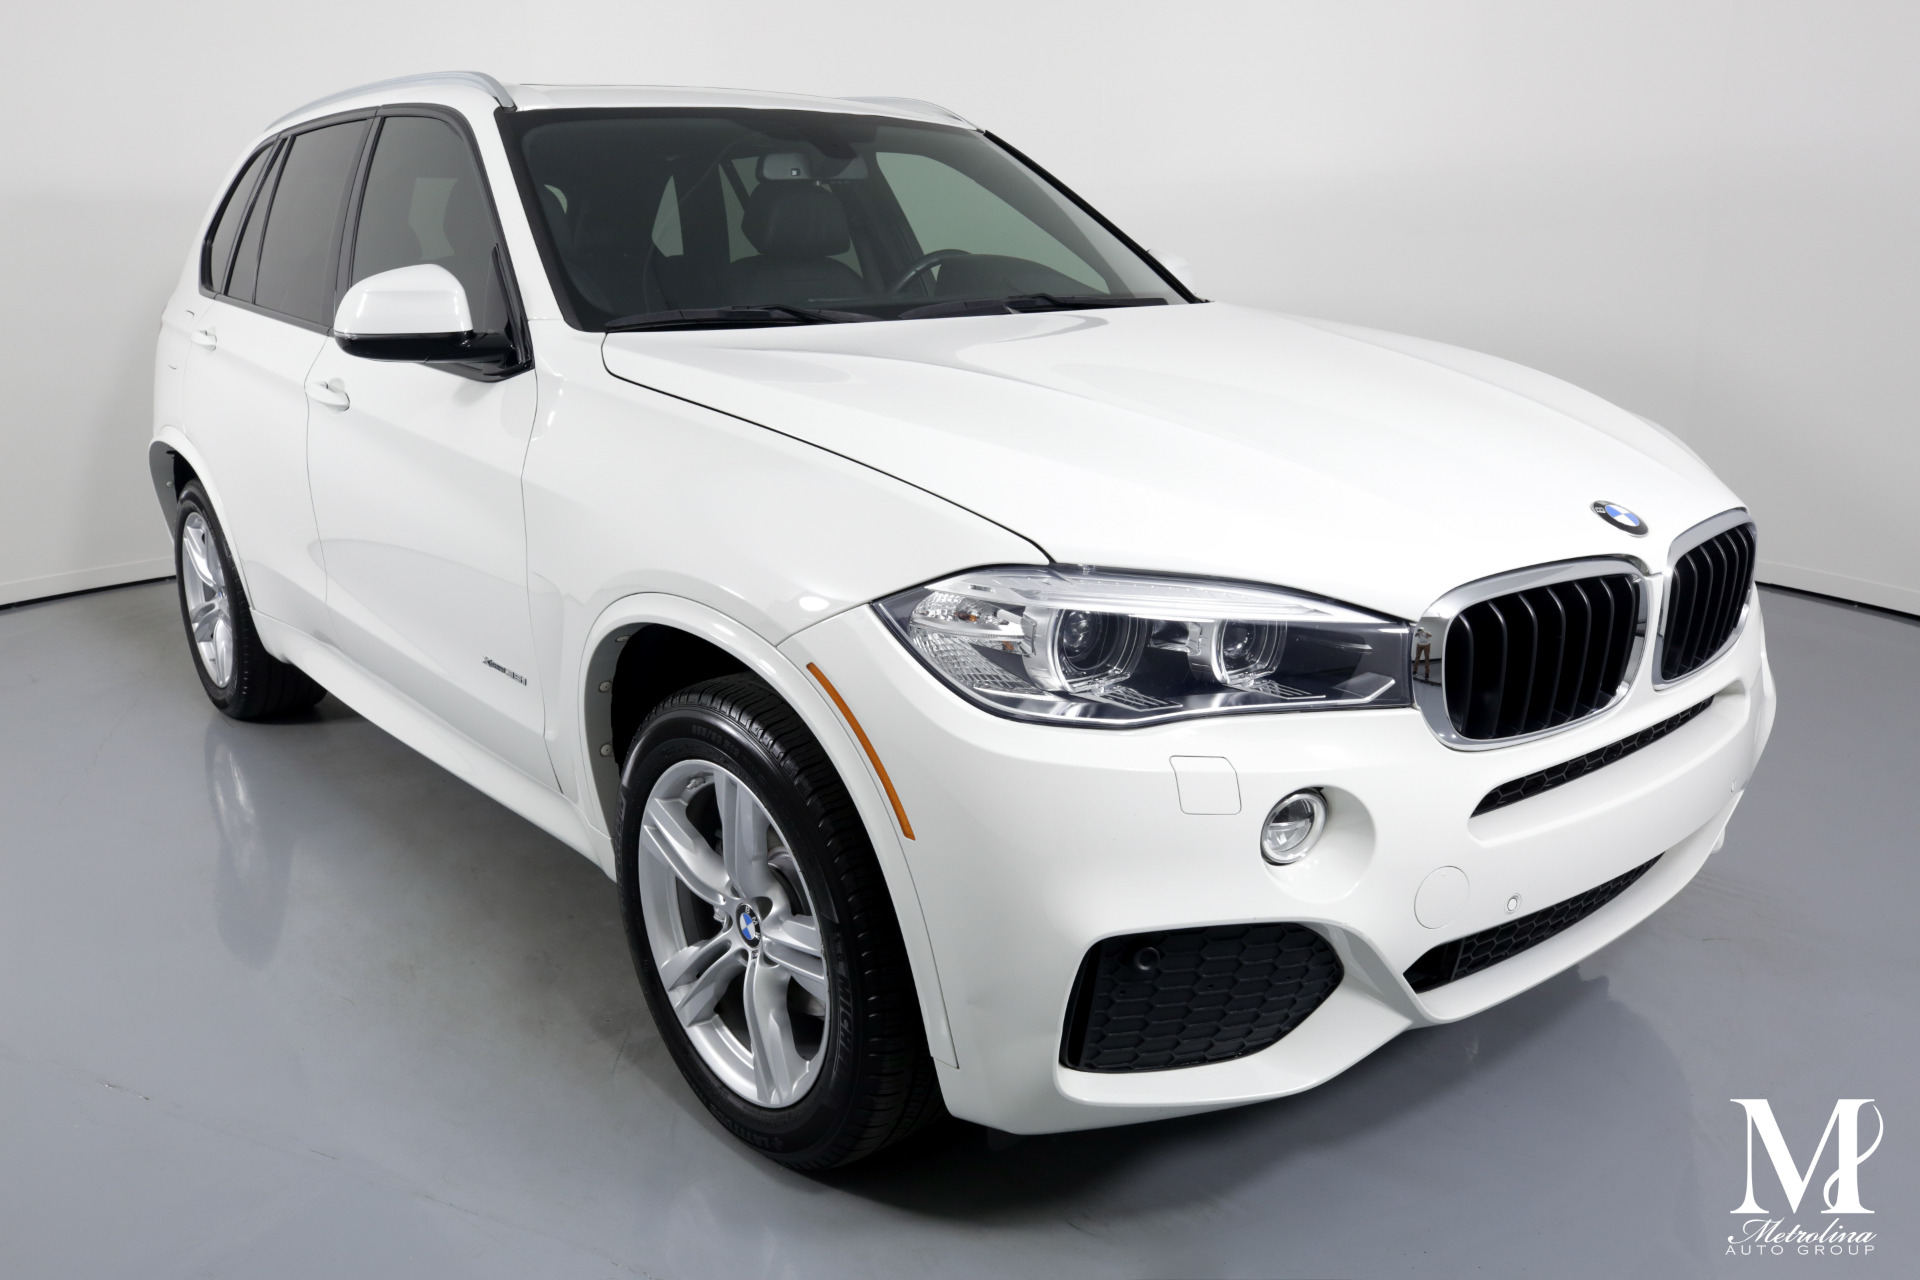 Used 2017 BMW X5 xDrive35i for sale $31,996 at Metrolina Auto Group in Charlotte NC 28217 - 2